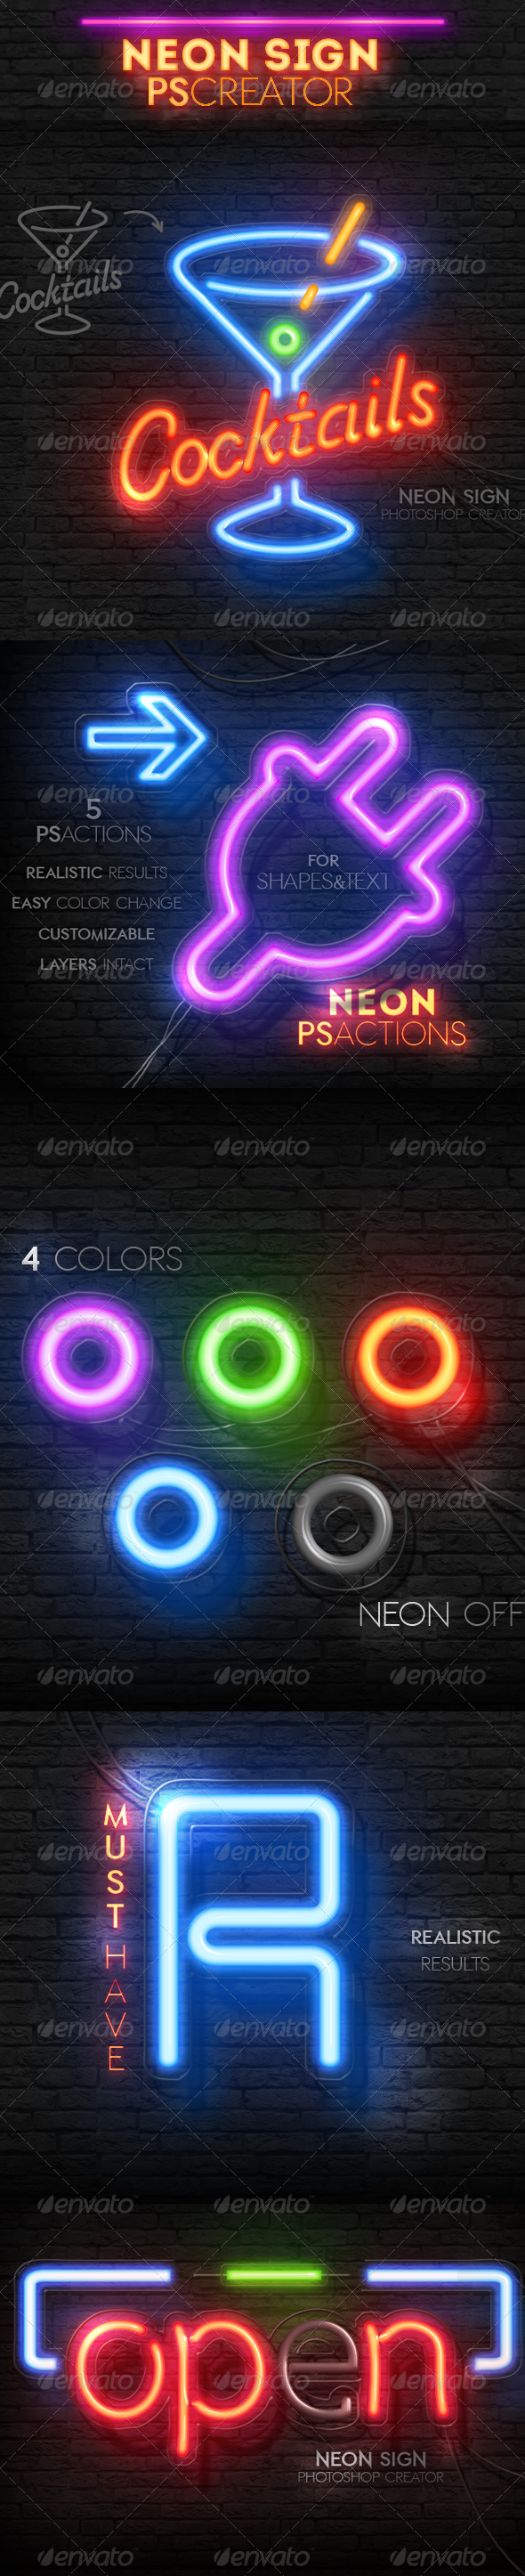 Neon Light Sign Photoshop Actions - Text Effects Actions